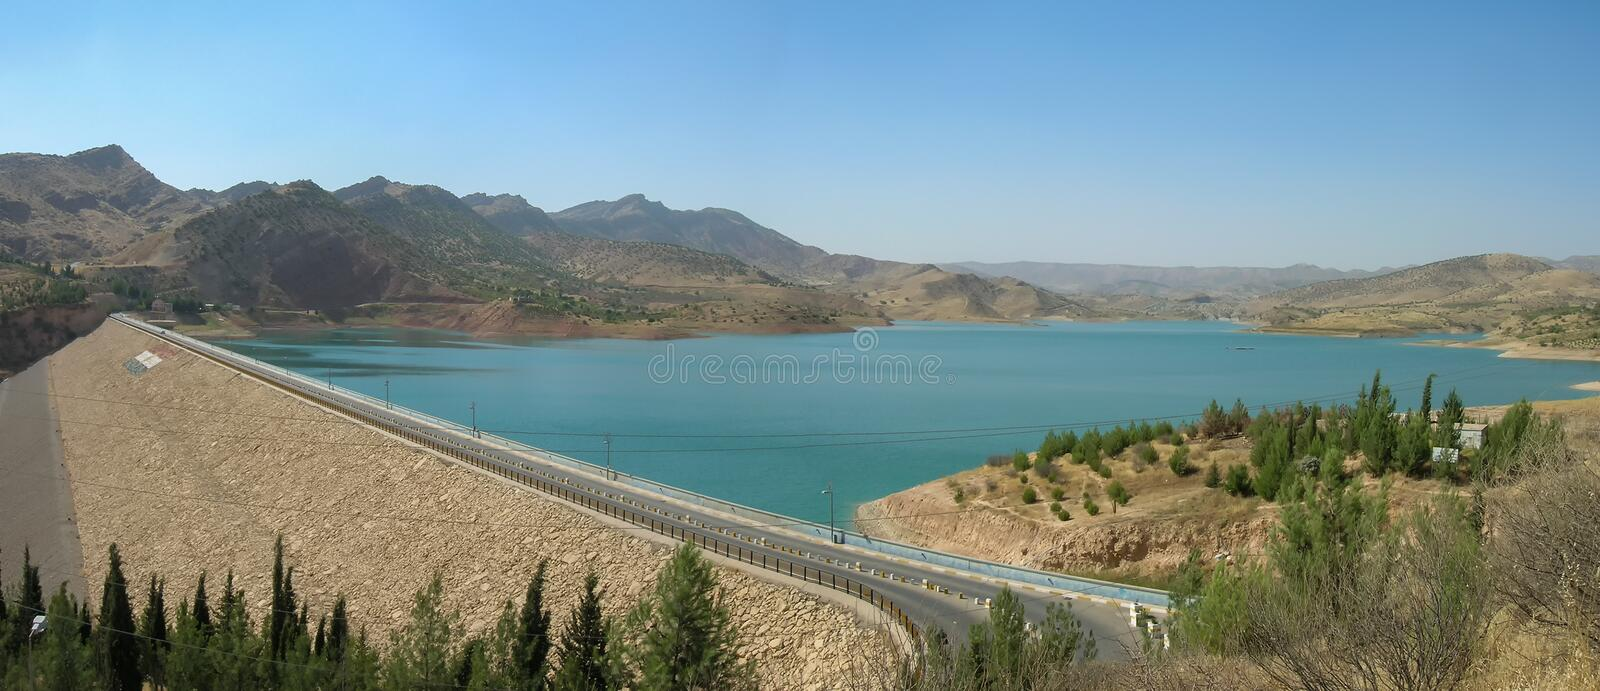 Duhok Dam in Kurdistan, near the city of Duhok. The Dohuk Dam is an earth-fill embankment dam on the Dohuk River just north of Dohuk in Dahuk Governorate, Iraq royalty free stock images